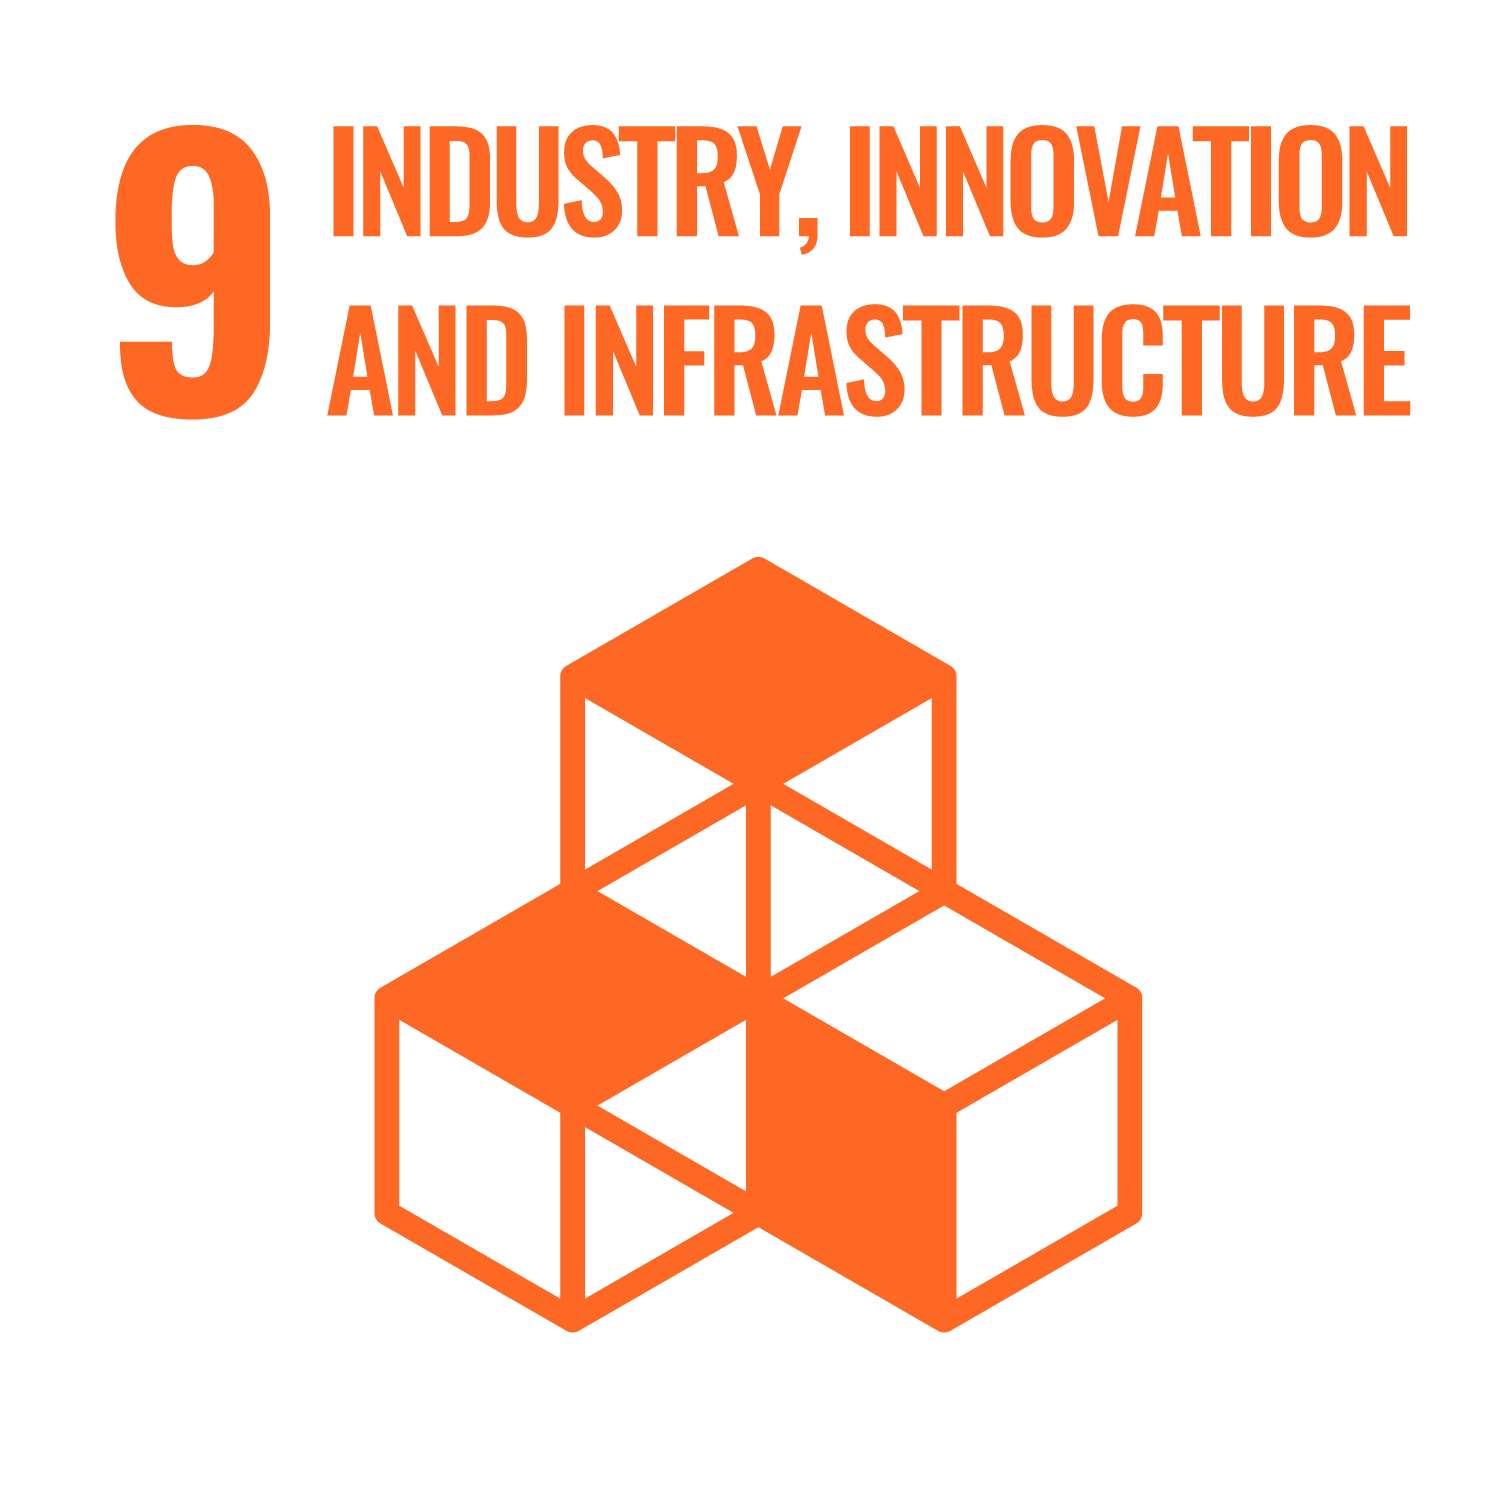 9 INDUSTRY, INNOVATINO AND INFRASTRUCTURE